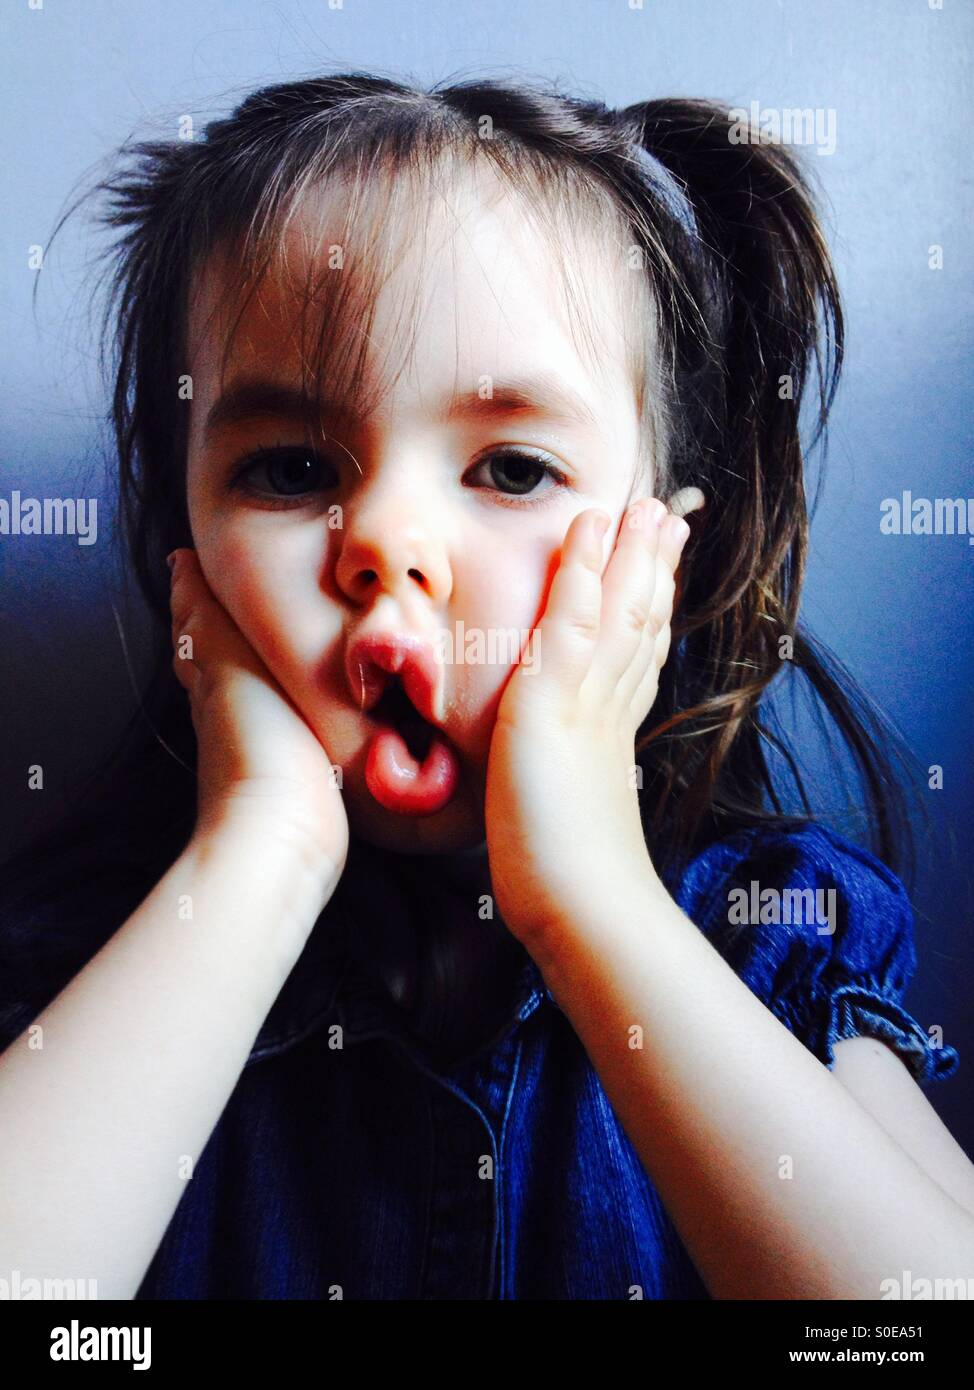 3-year old girl making funny face Photo Stock